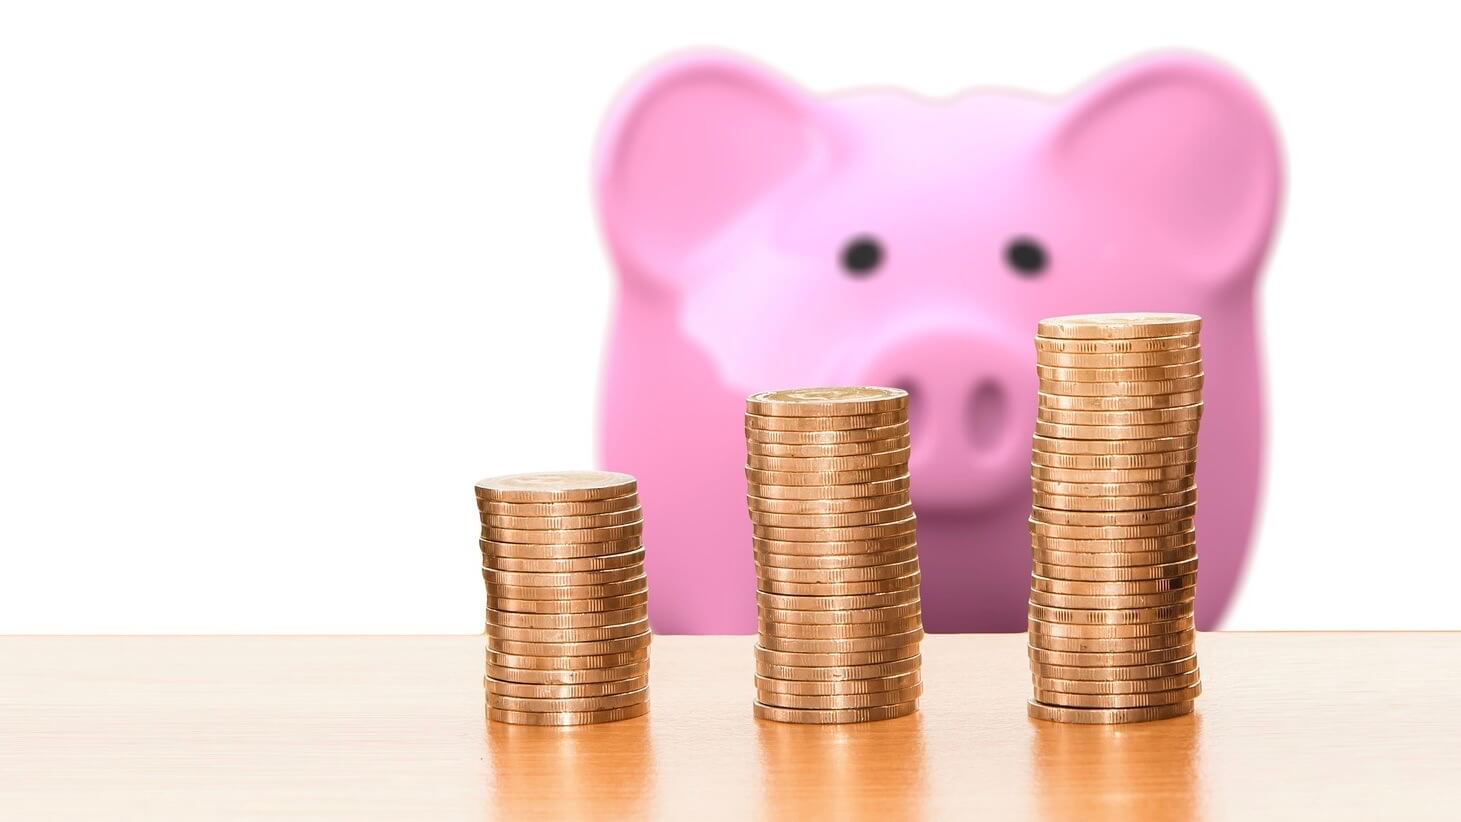 a-pig-is-watching-money-increase